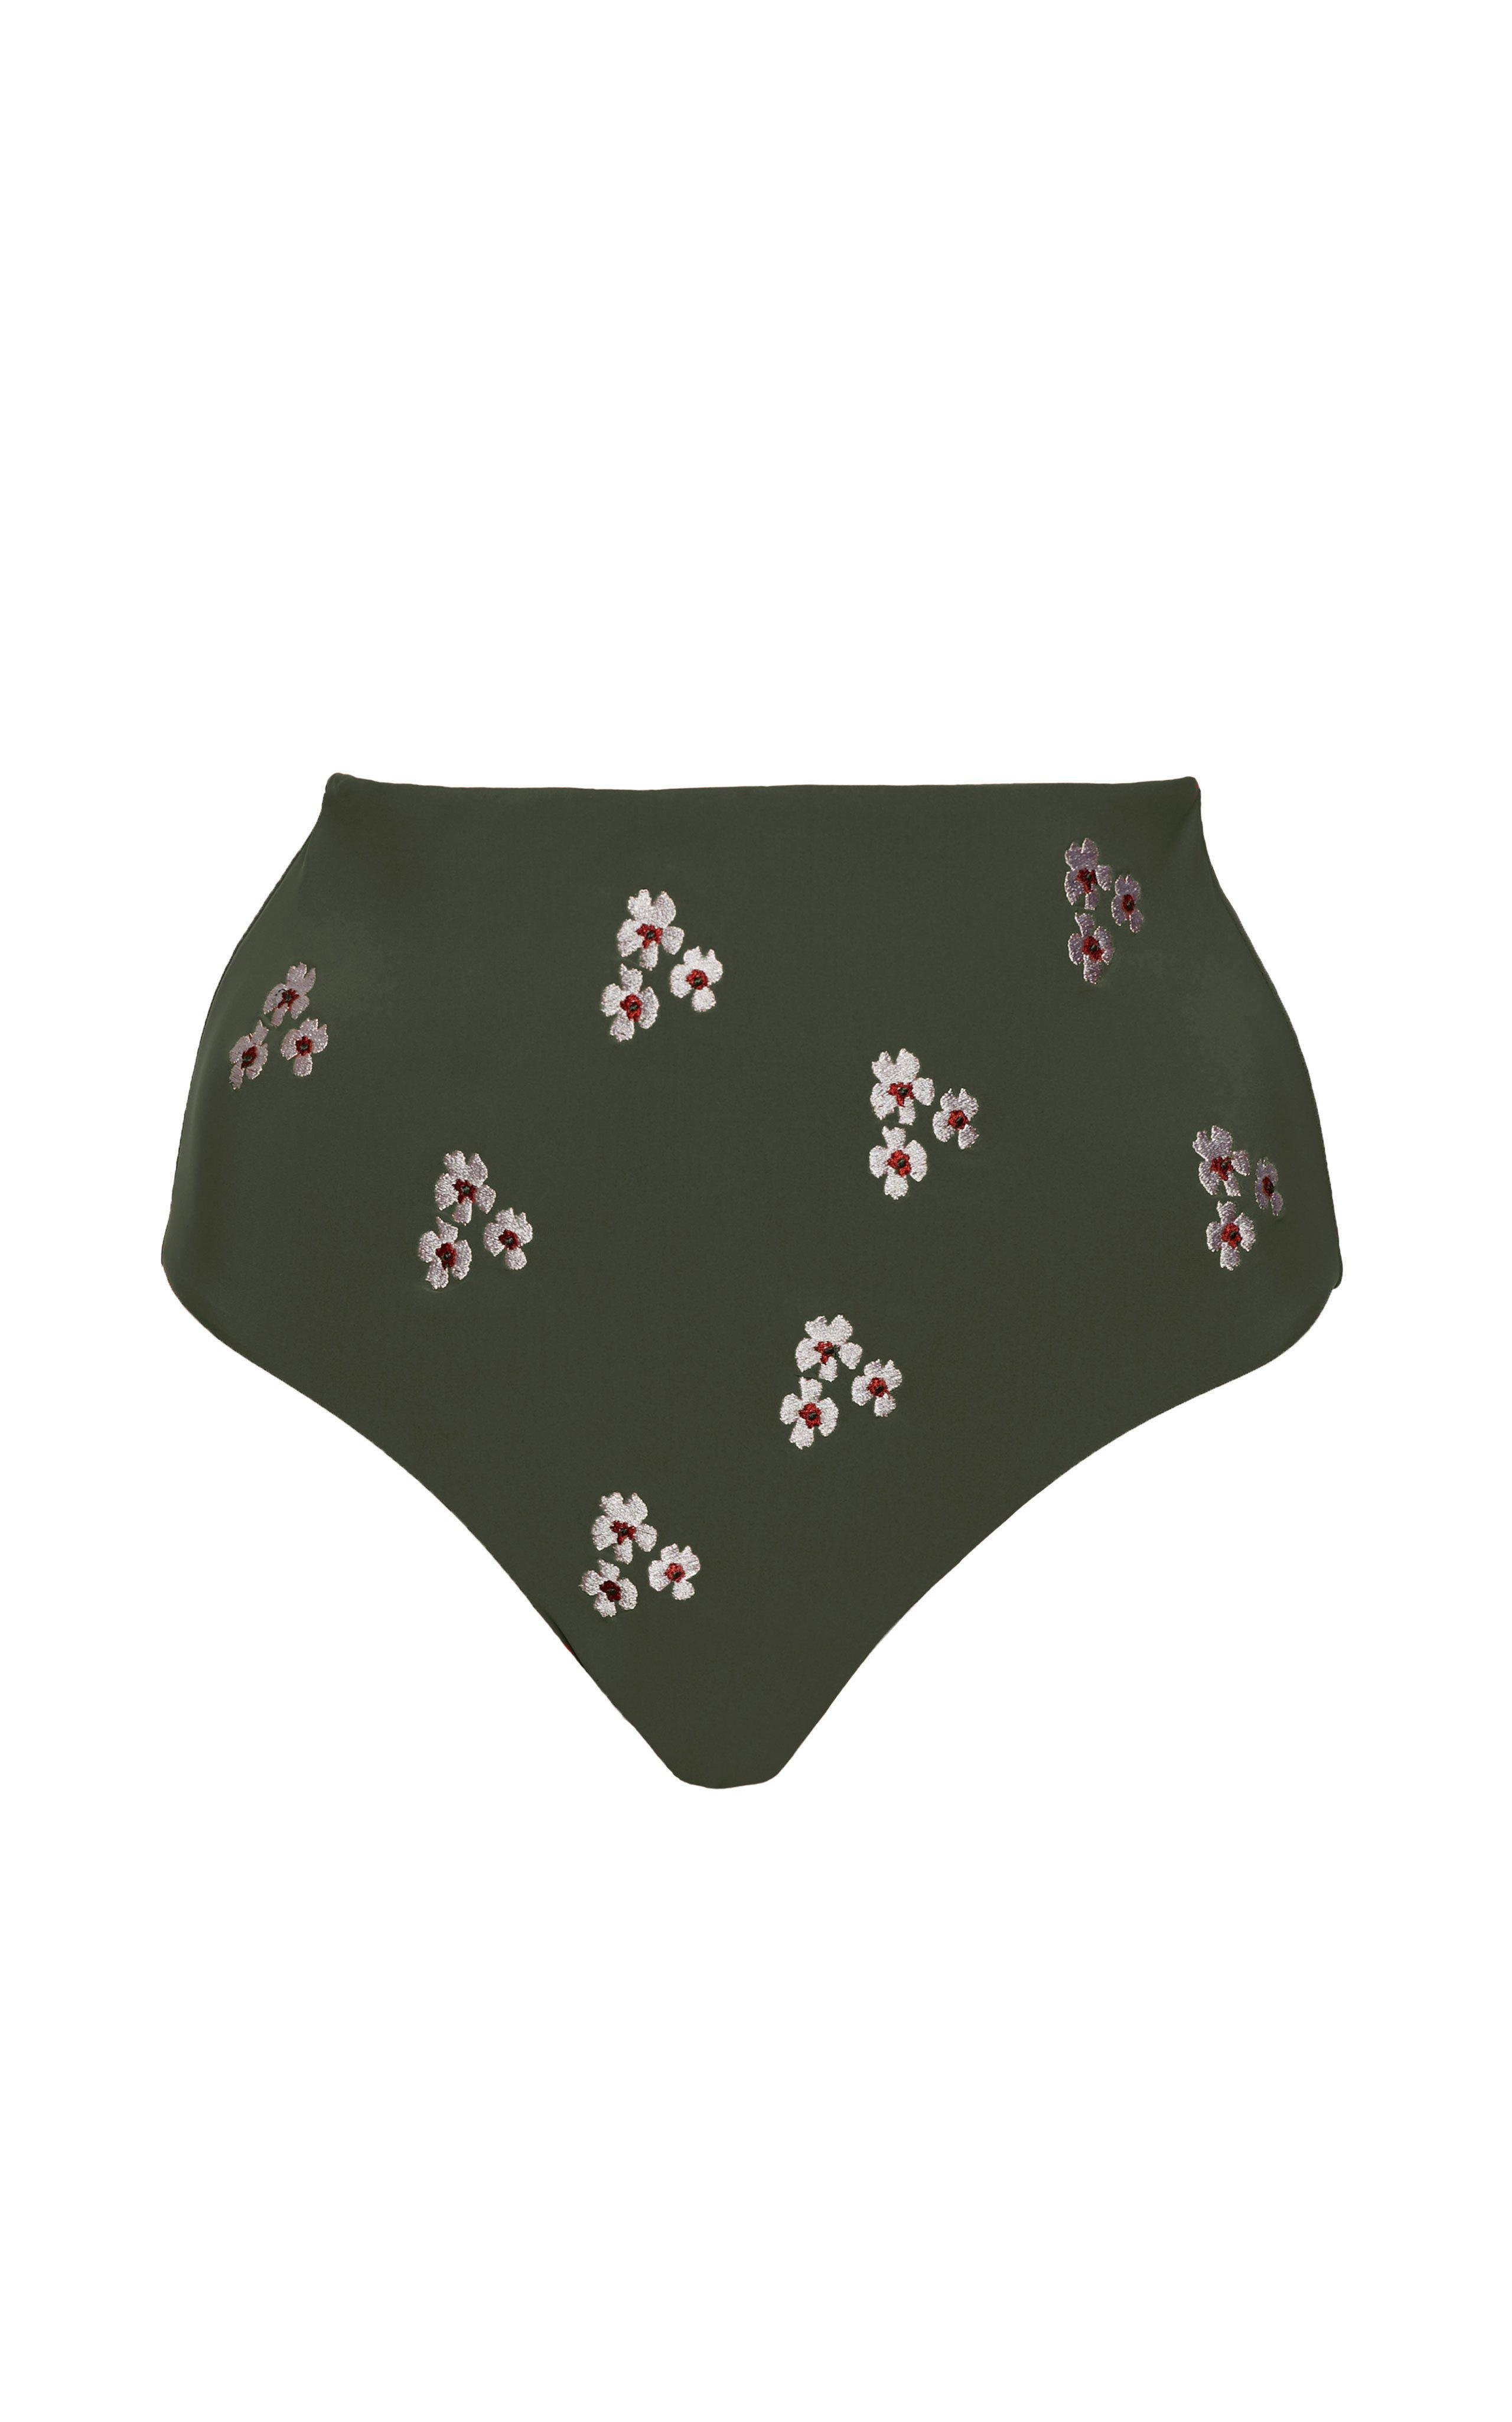 The High-Waisted Cheeky Bottom with Floral Embroidery